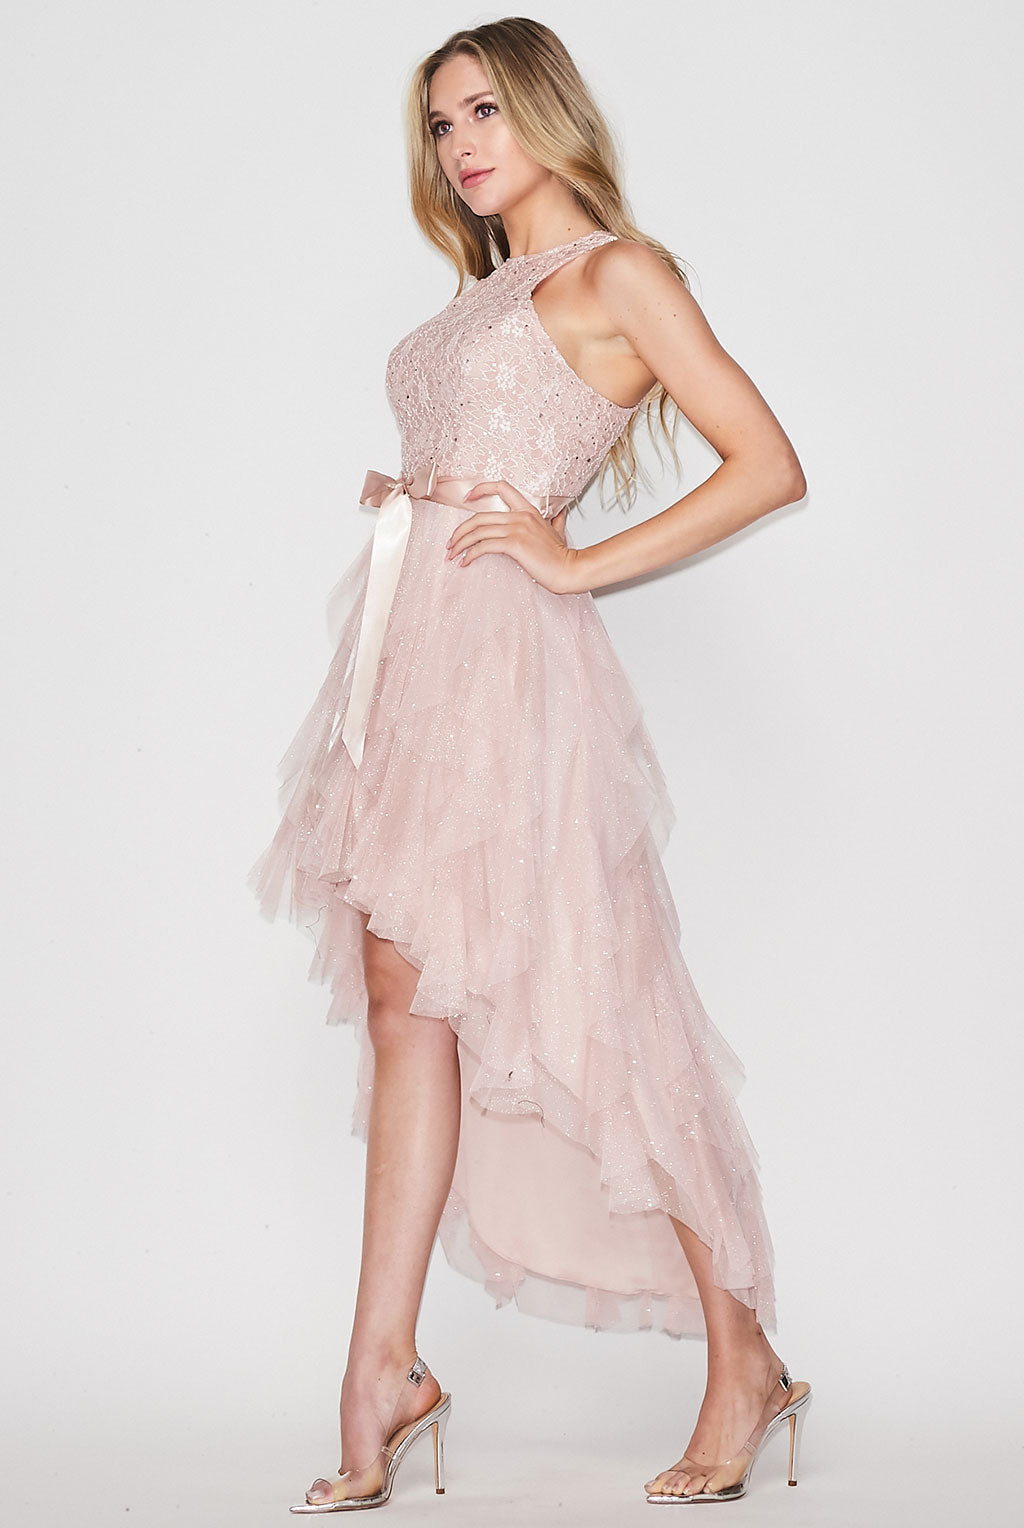 Teeze Me | Metallic Lace Glitter Mesh High Low Petal Dress | Blush